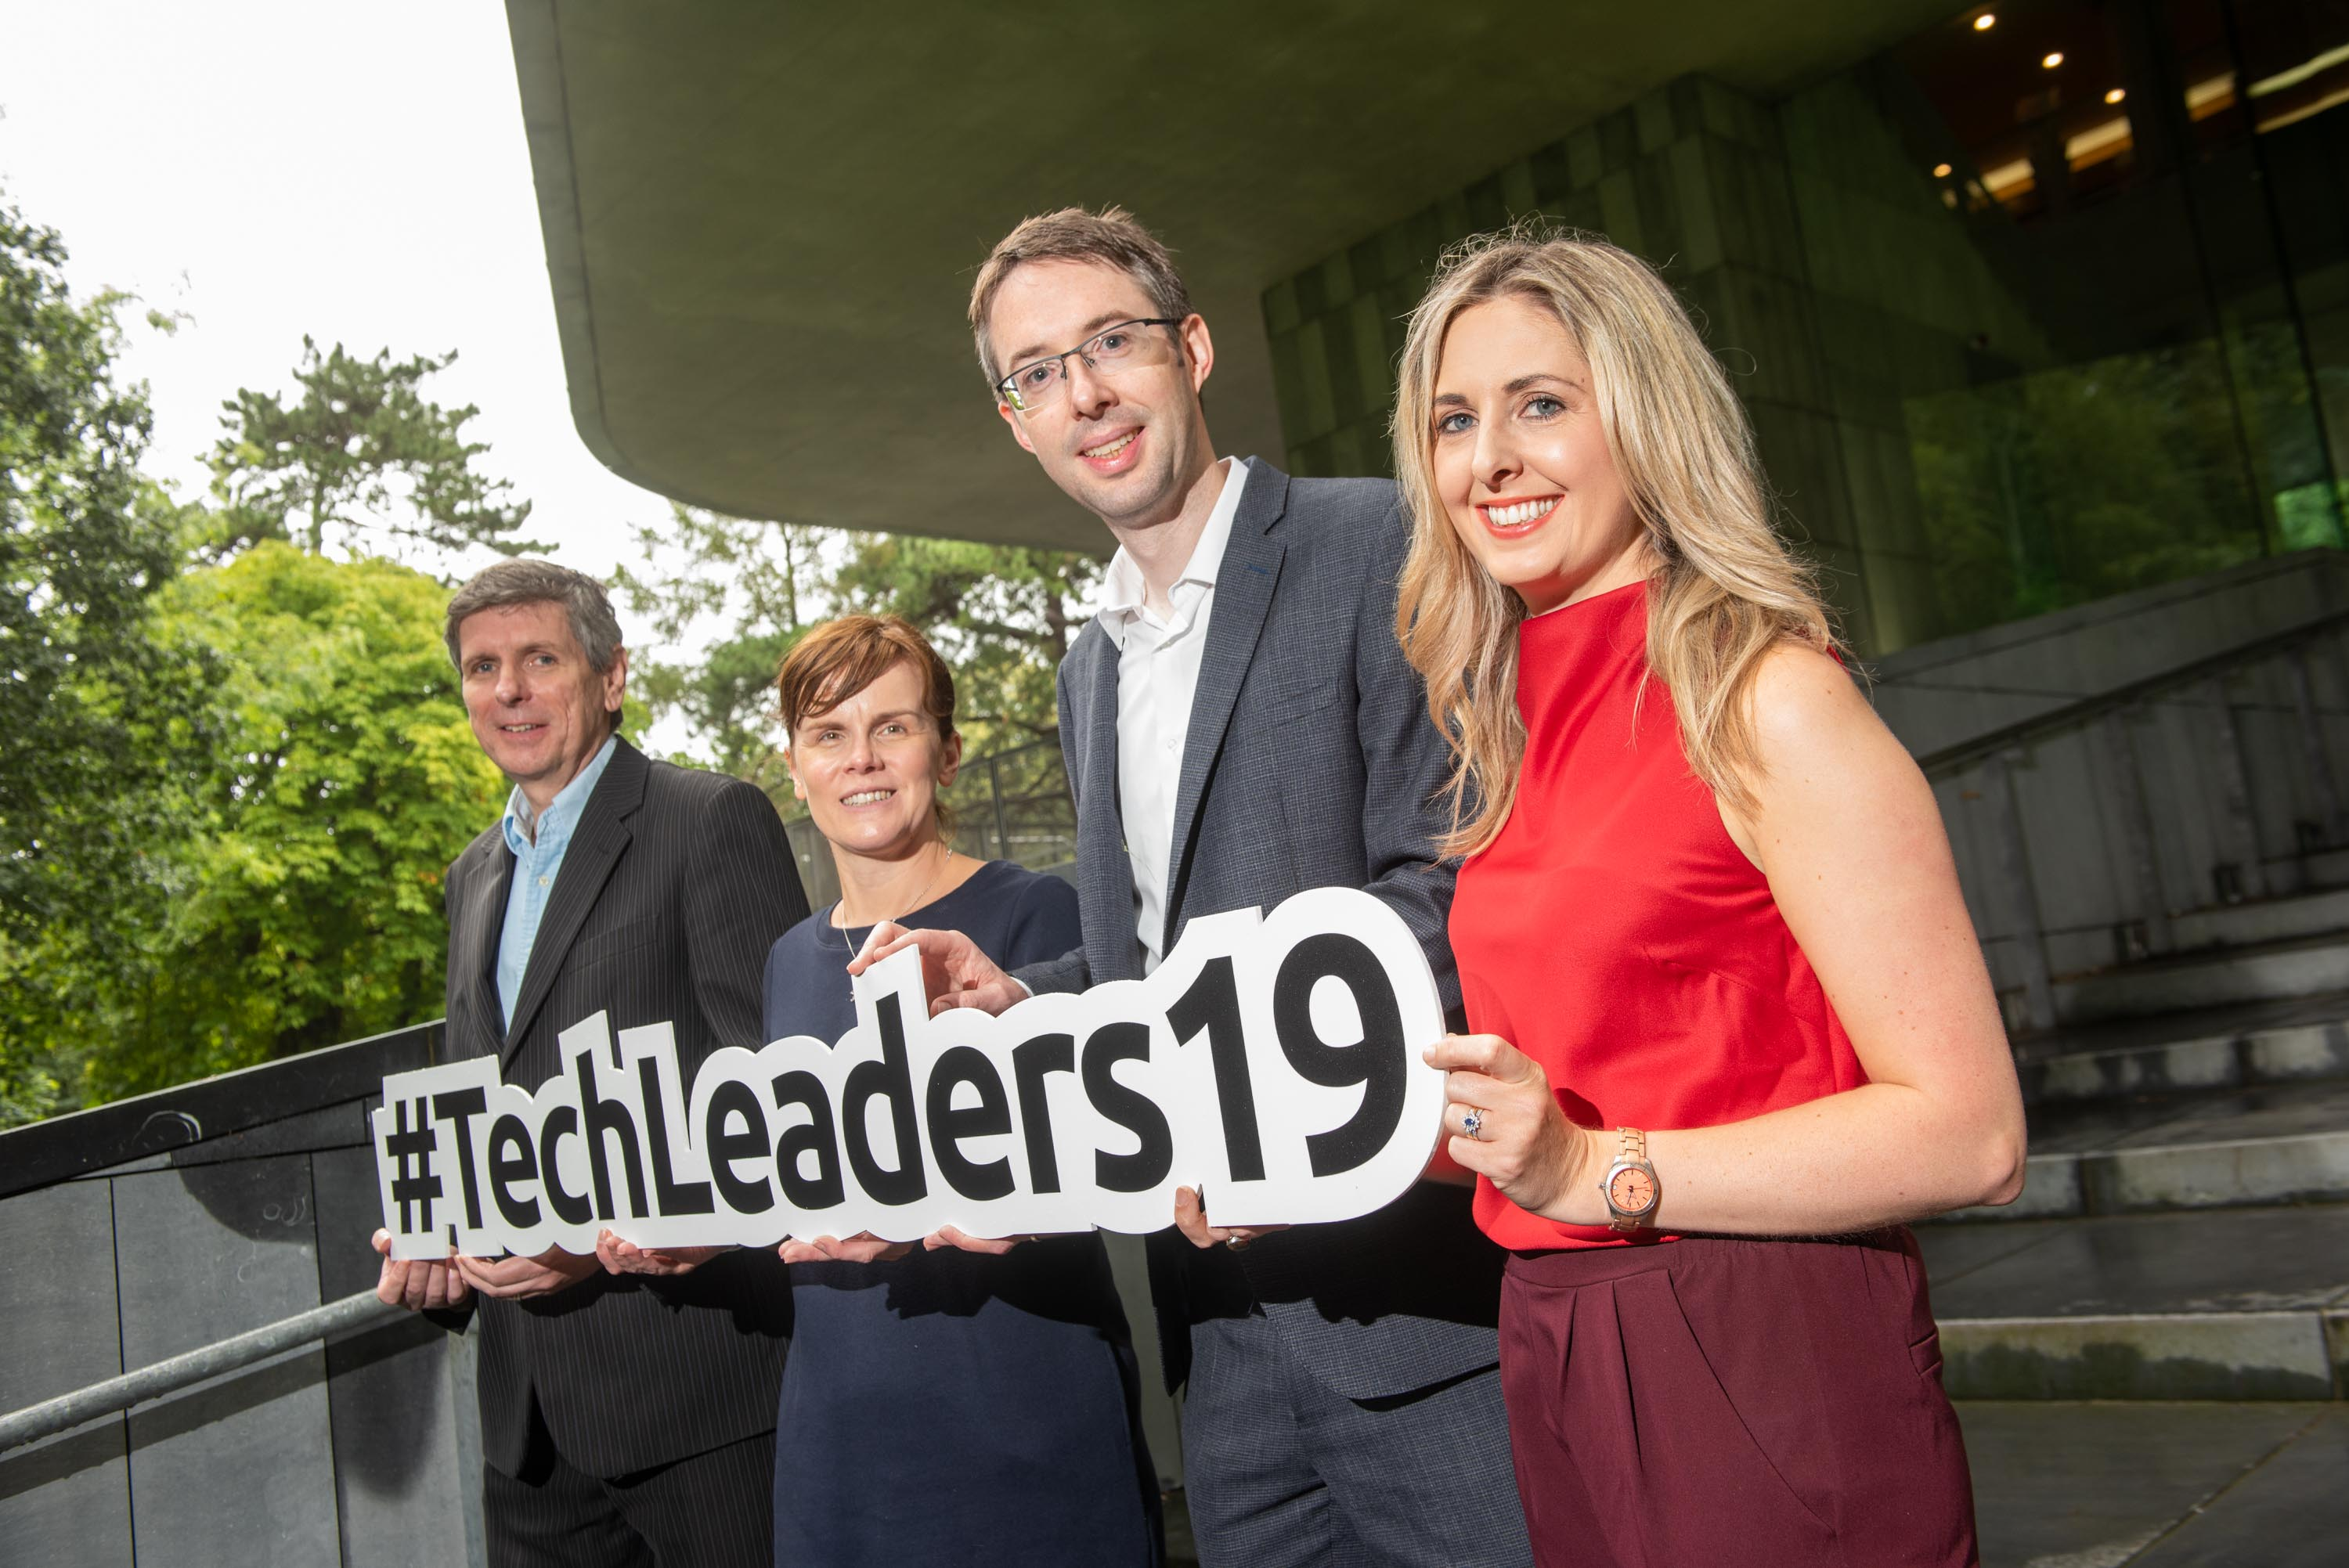 it@cork Leaders Awards 2019 #TechLeaders19